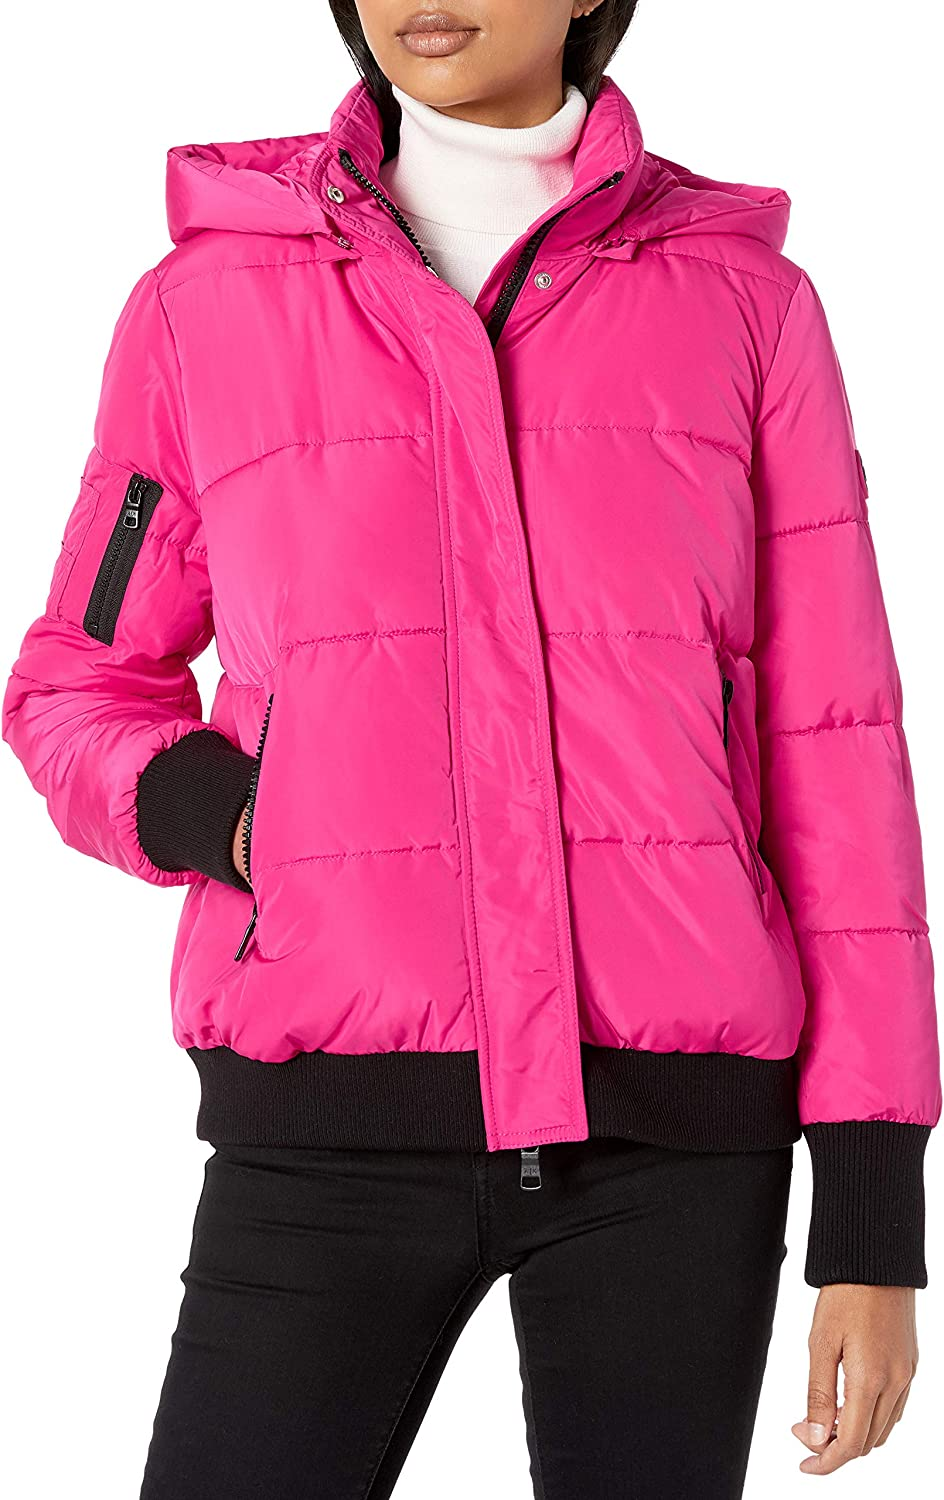 AX Armani Exchange Women's Outdoor Jacket with Hood and Arm Zipper Detail